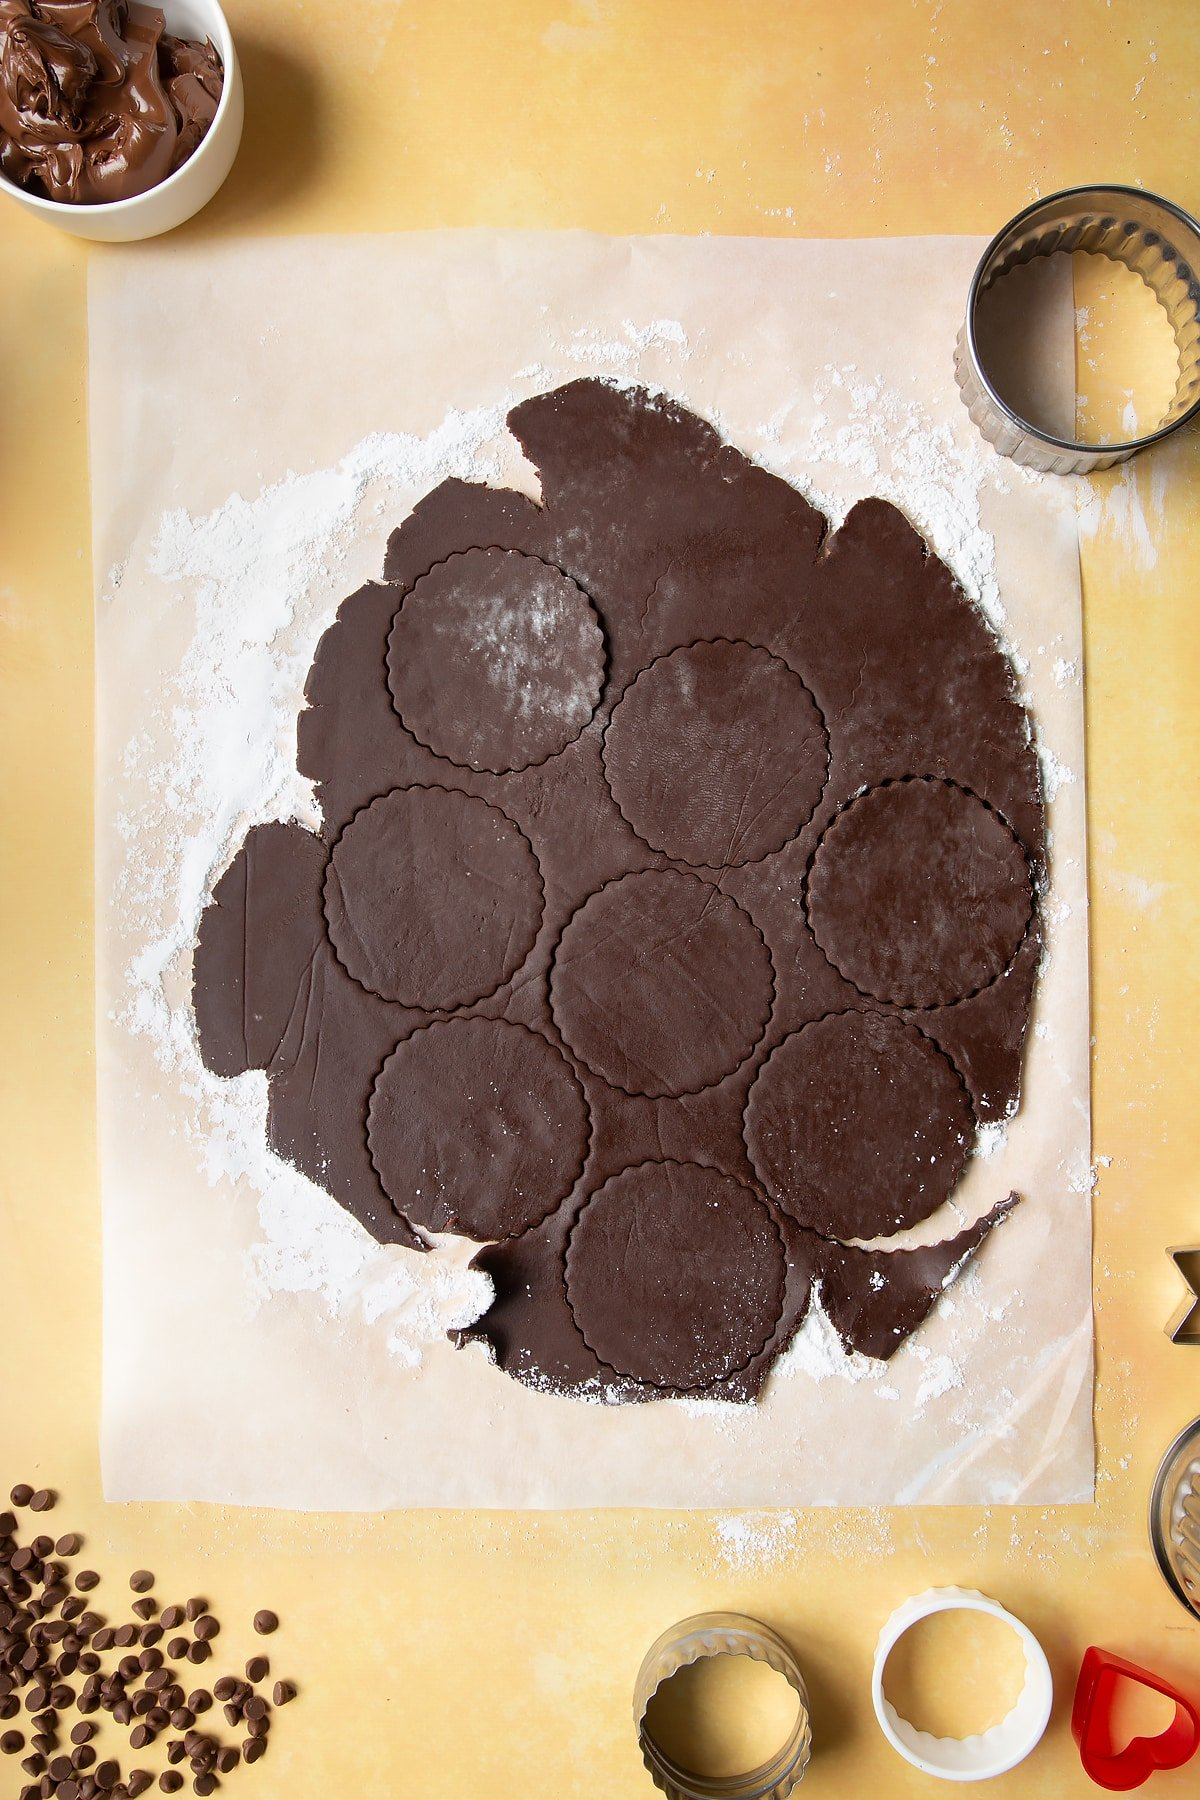 Chocolate shortbread dough rolled out on baking paper. Cookie shapes have been cut out.